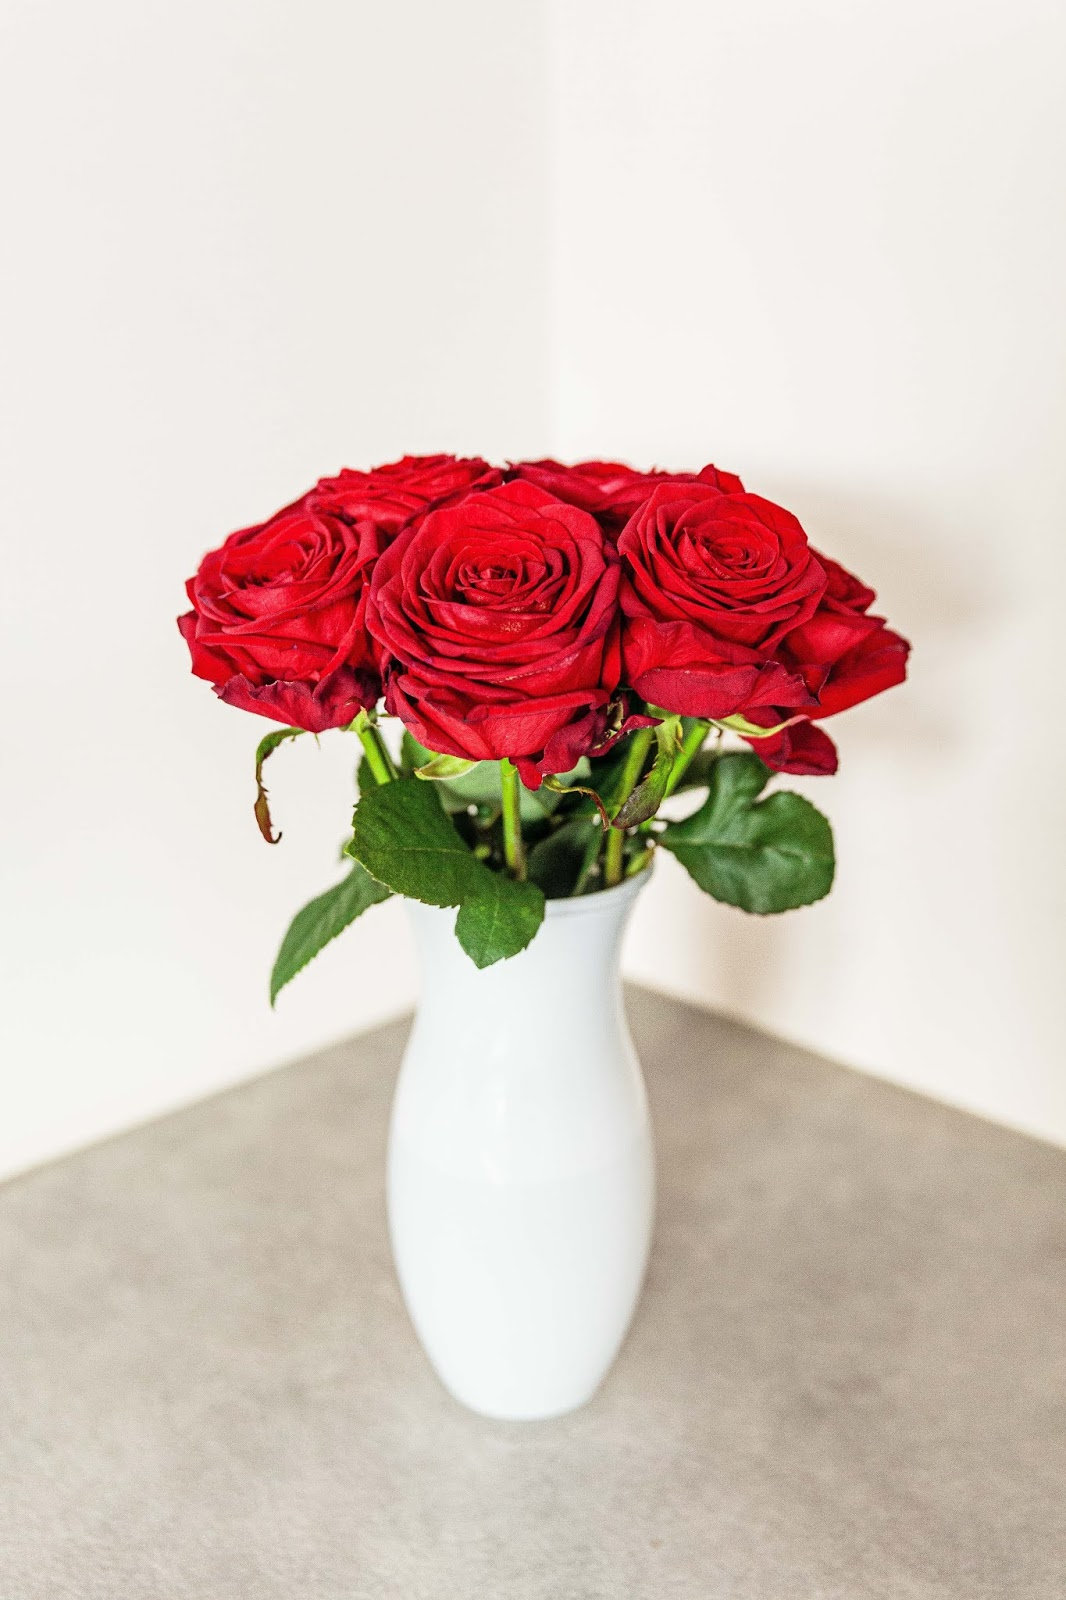 red rose flowers in white vase, rose images